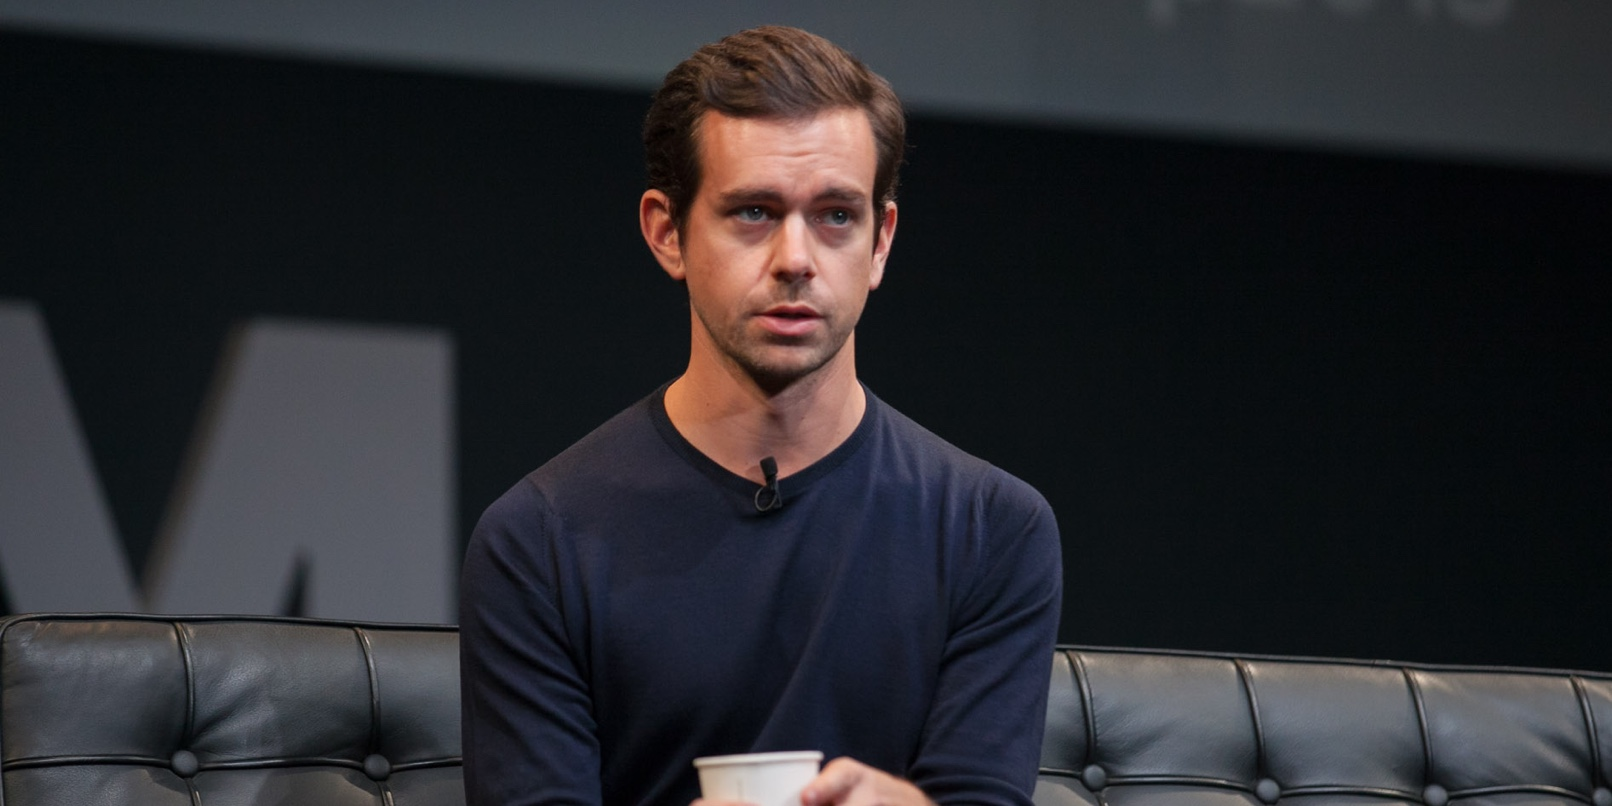 Breaking: Twitter CEO Jack Dorsey's account has apparently been hacked